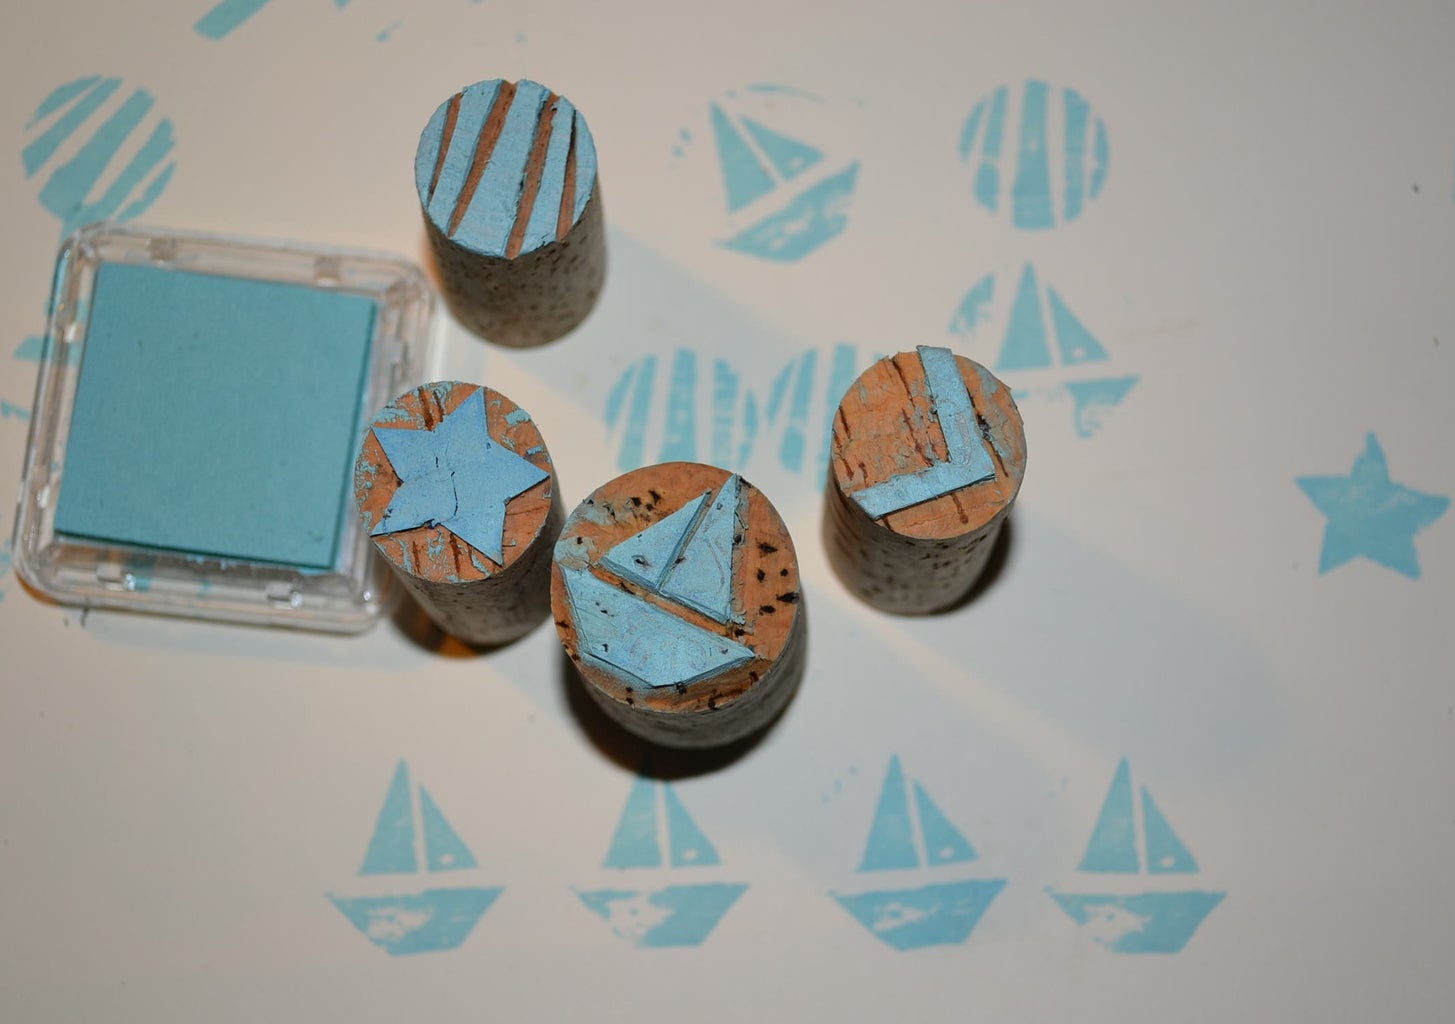 ⚓ CORK STAMPS ⚓